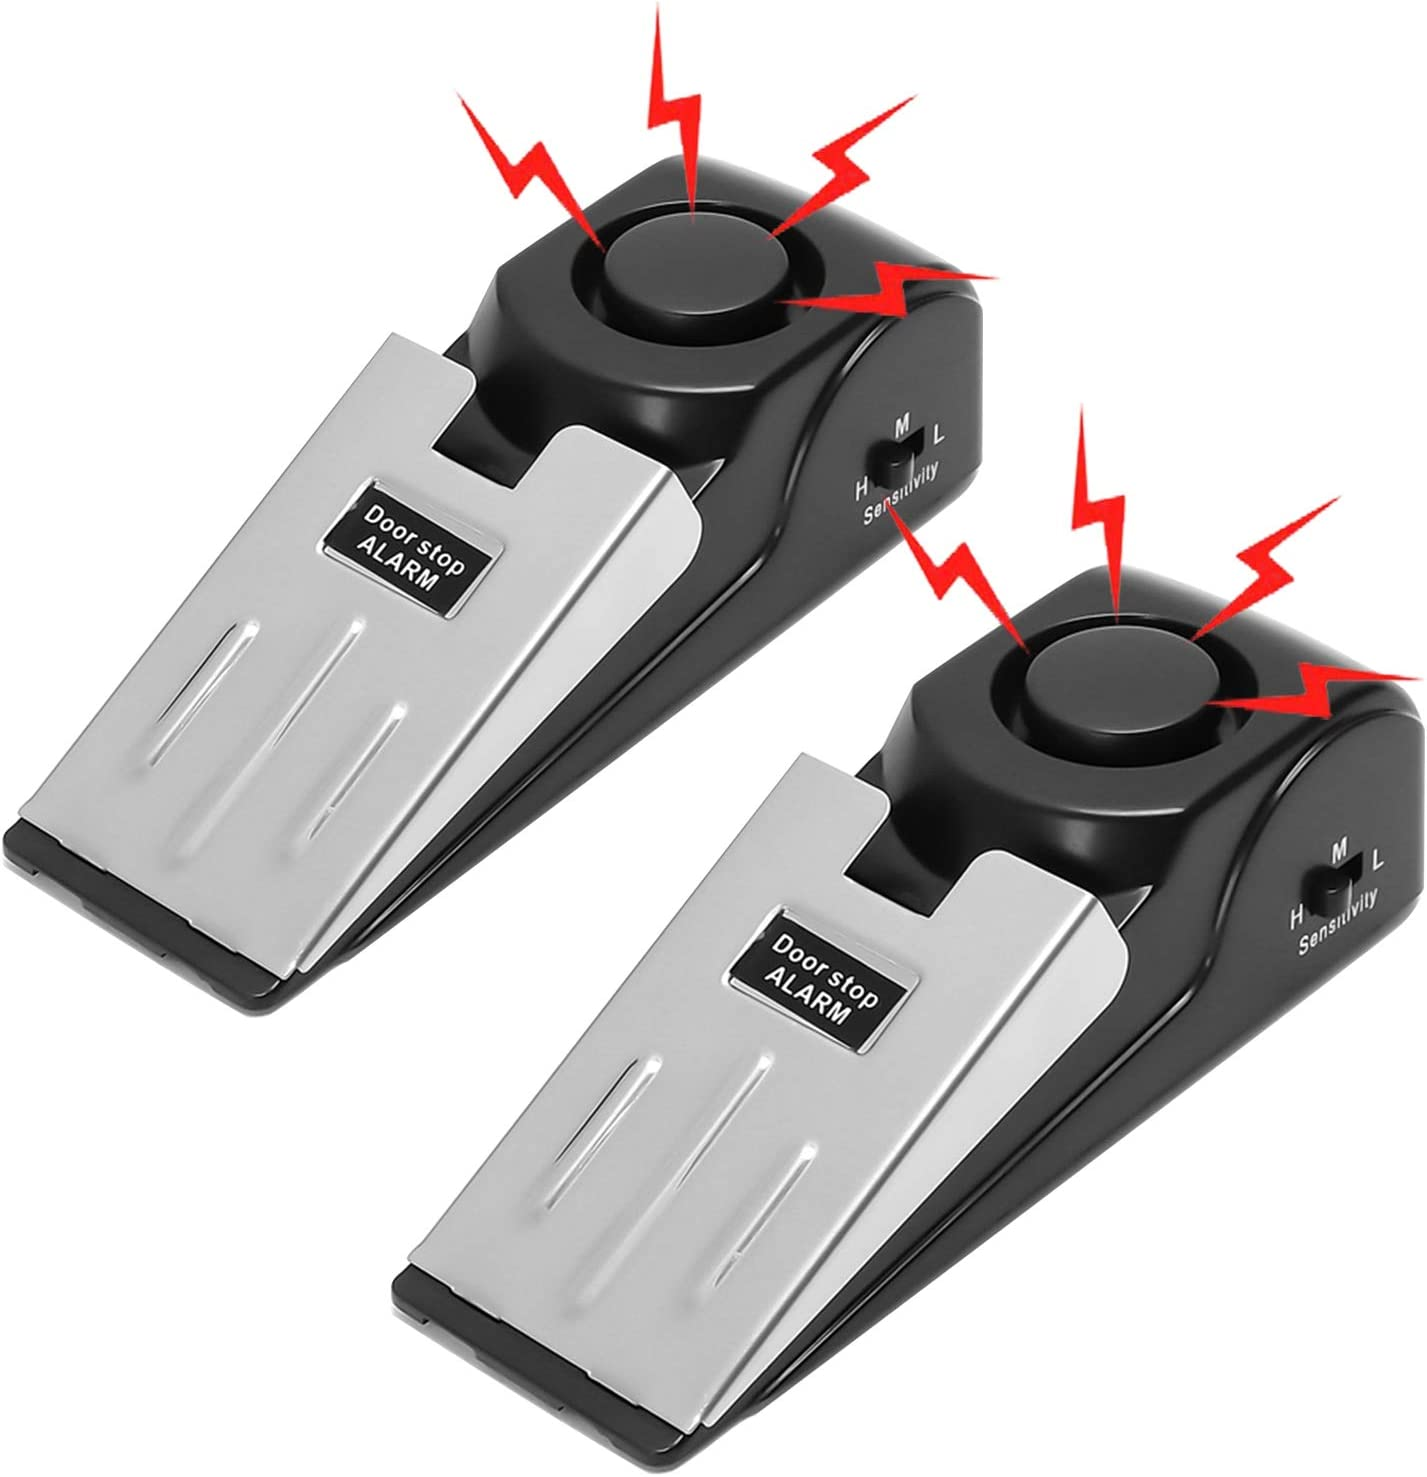 2-Pack Door Wedge Jammer Security Bar Door Stopper Alarm Home Defense Alert with 120DB Siren Personal Portable Protection Devices for Home & Travel Apartment House